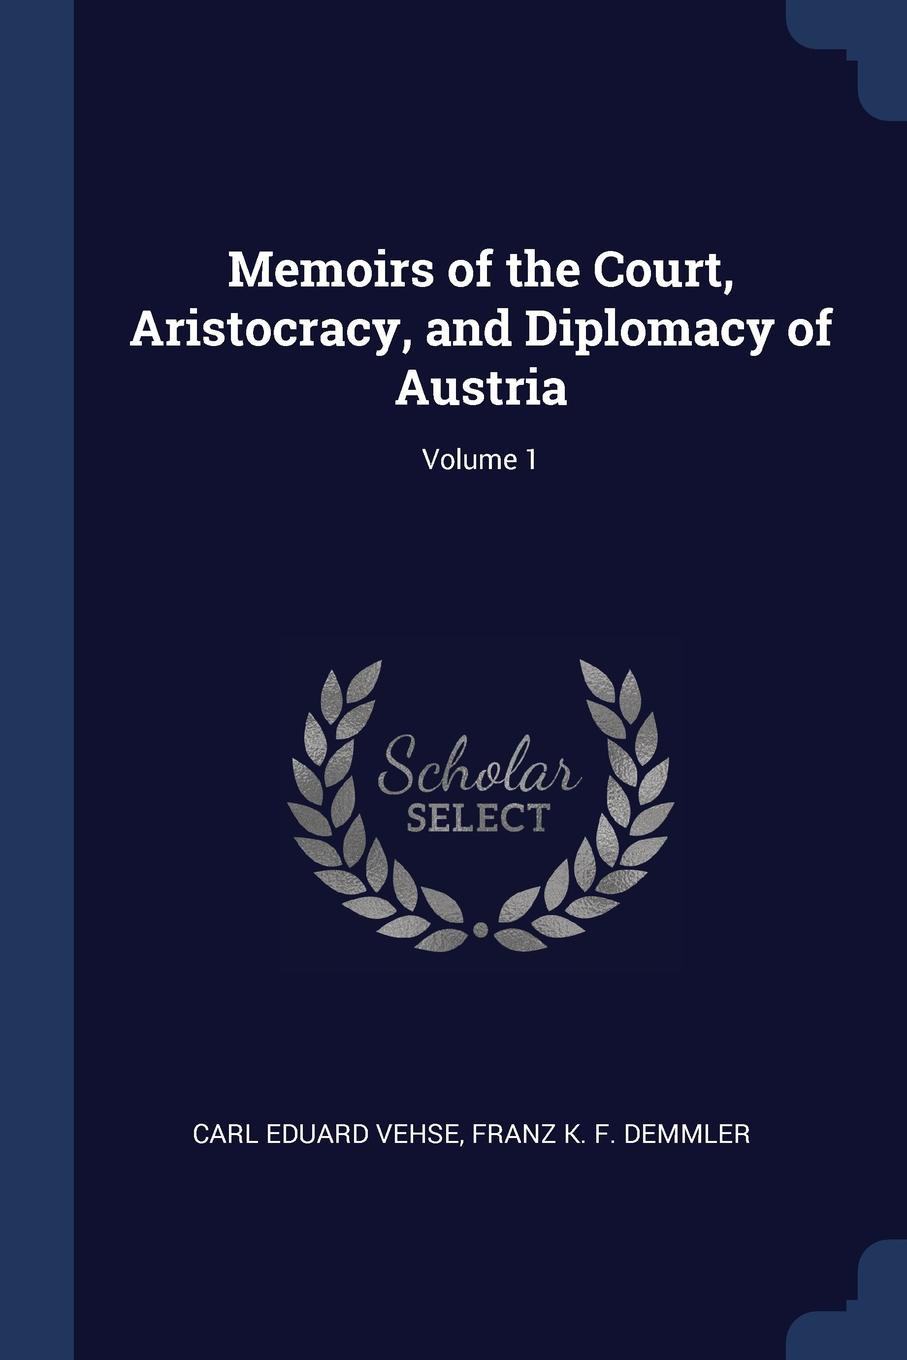 Memoirs of the Court, Aristocracy, and Diplomacy of Austria; Volume 1. Carl Eduard Vehse, Franz K. F. Demmler